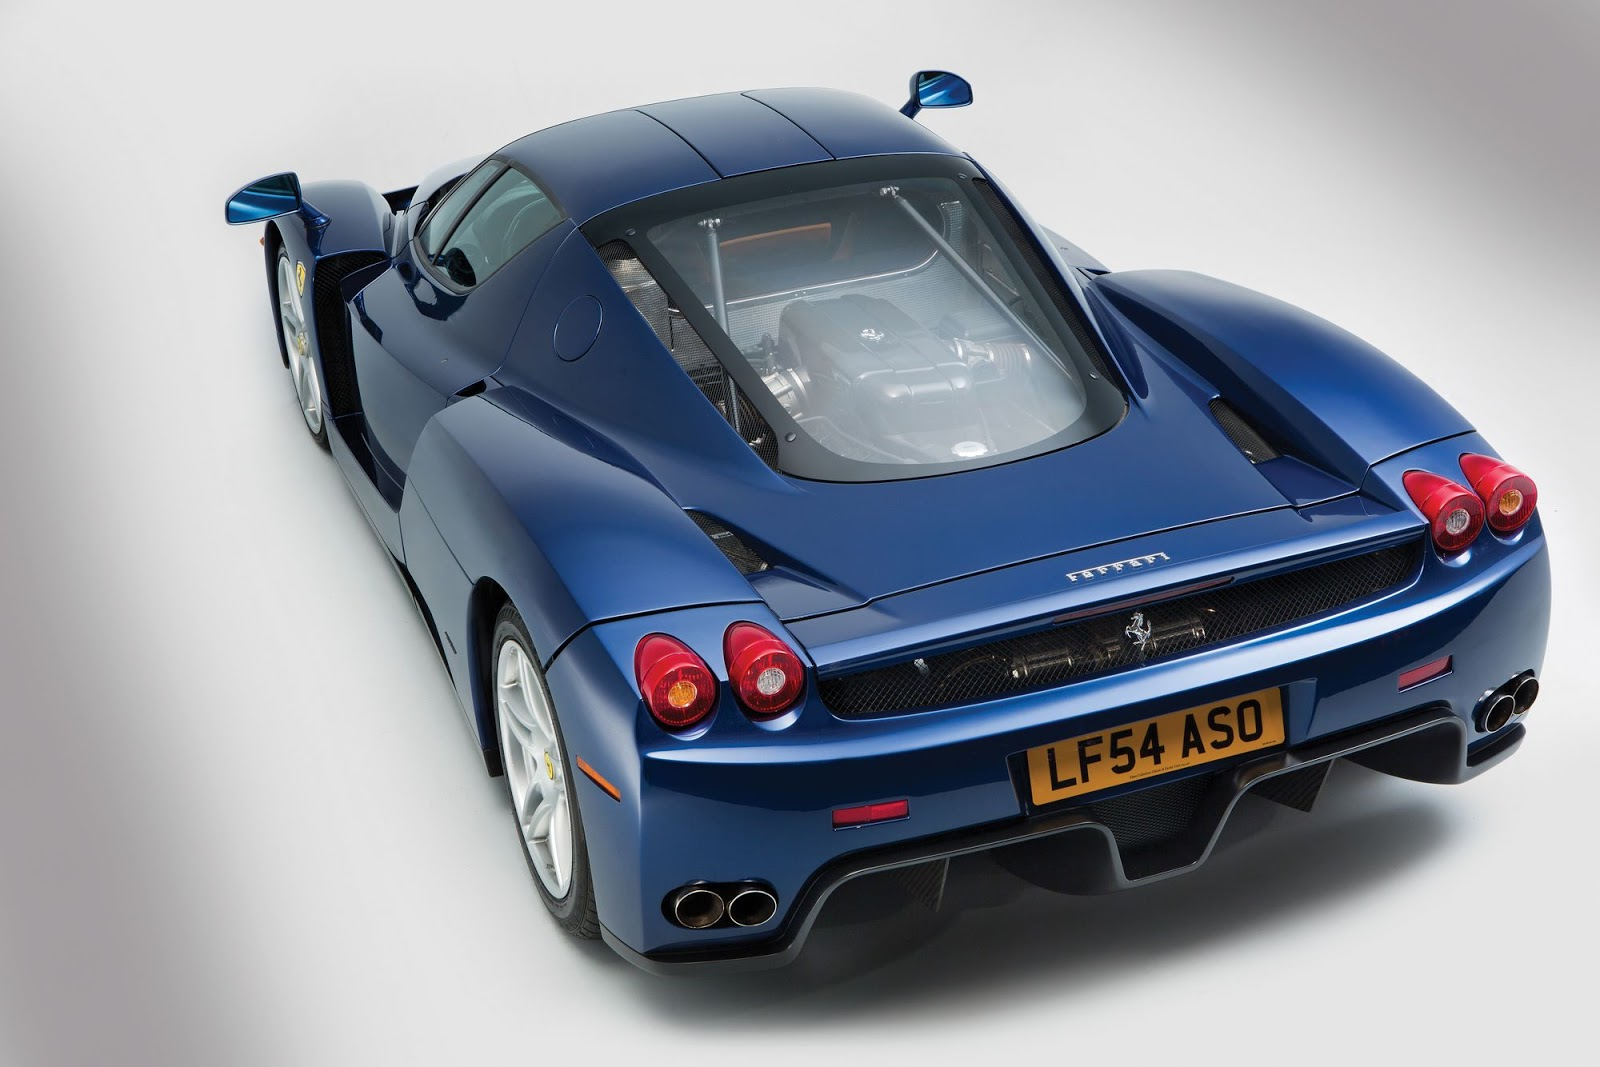 Blue Ferrari Enzo in auction (7)